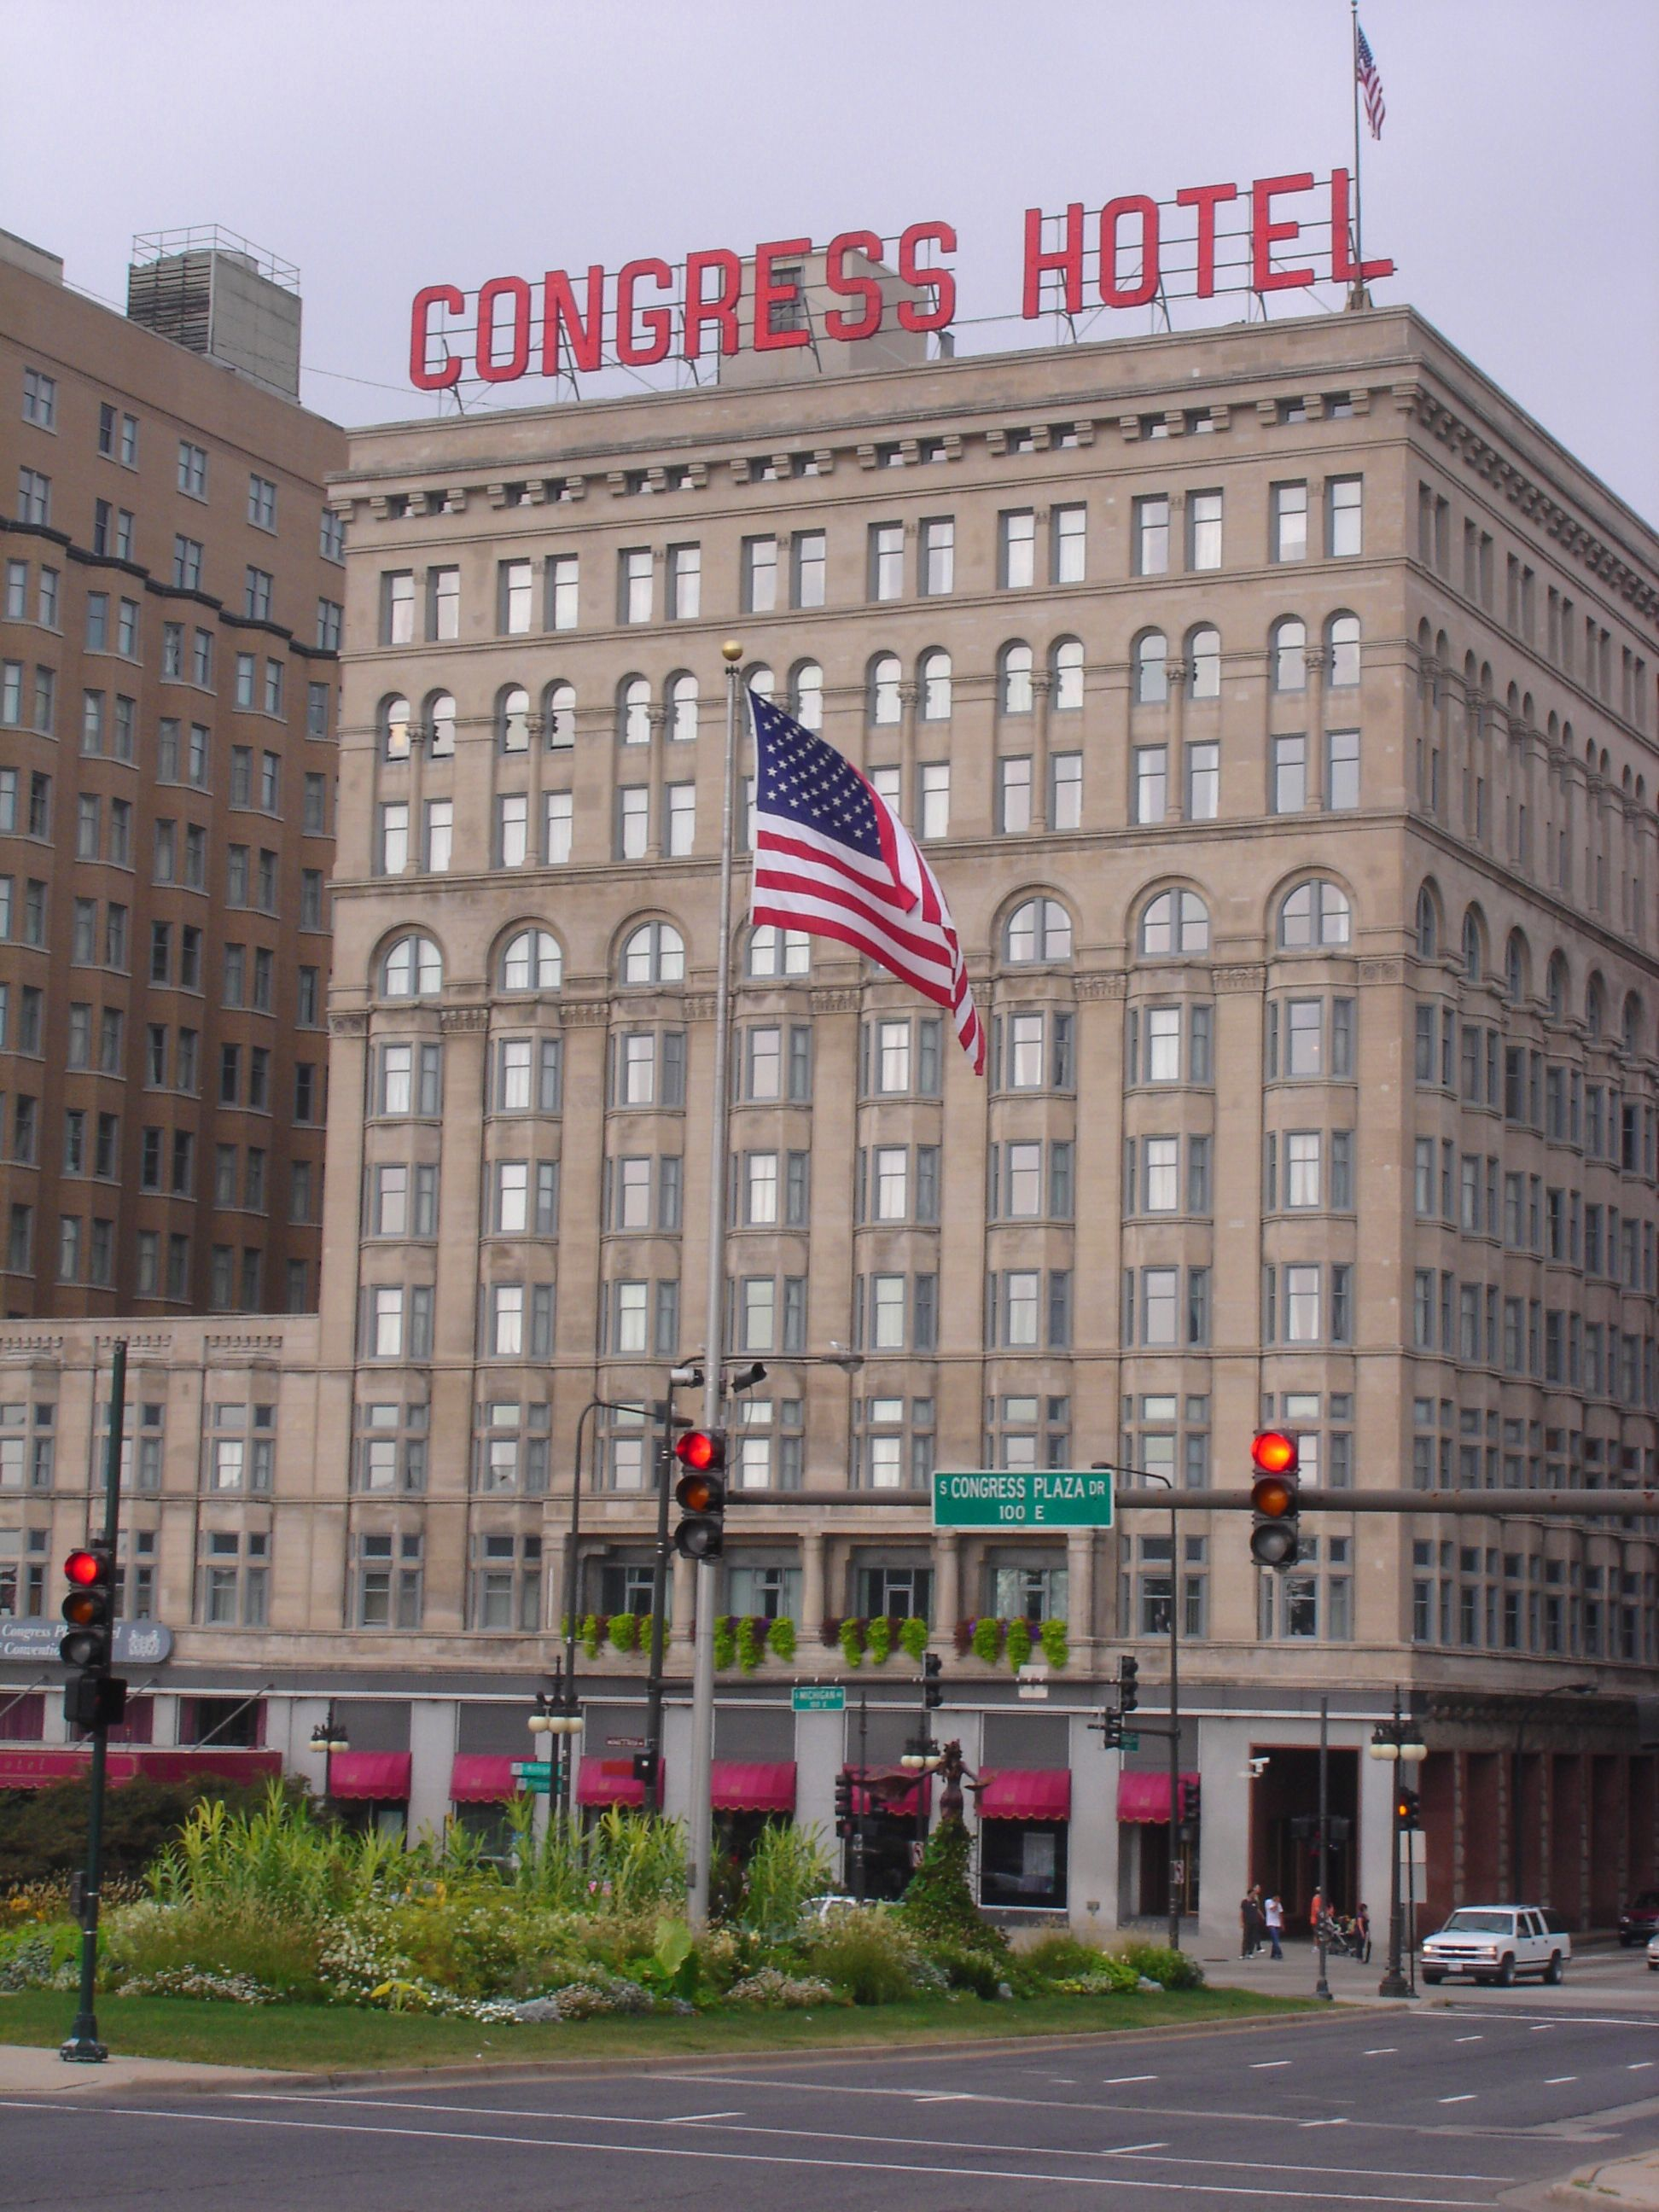 Stay the night in a Haunted Hotel - The Congress Hotel in Chicago ...